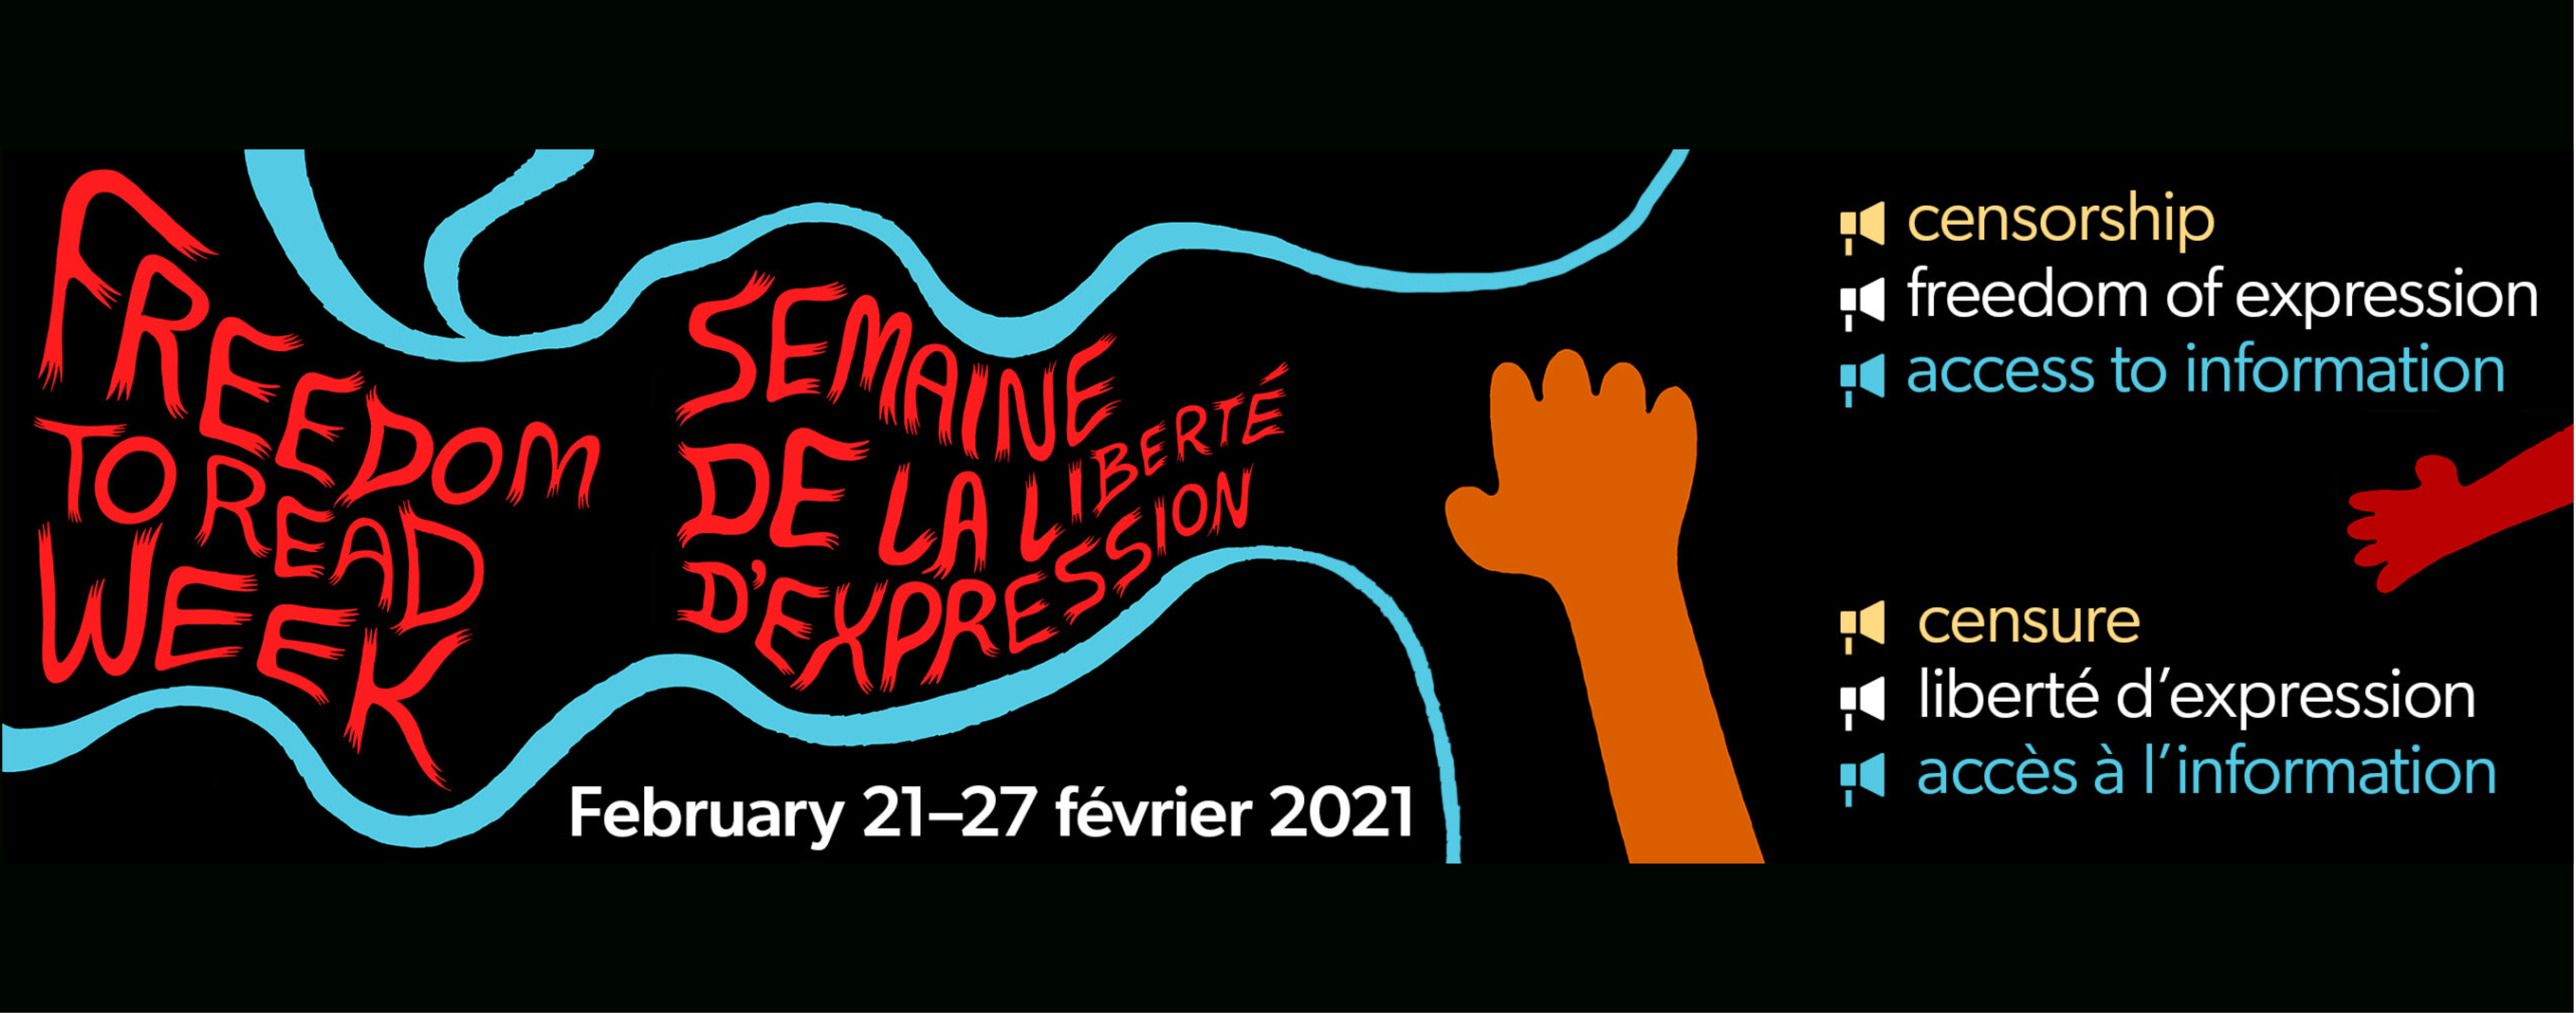 Freedom to Read Week February 21-27 2021. Censorship, freedom of expression, access to information